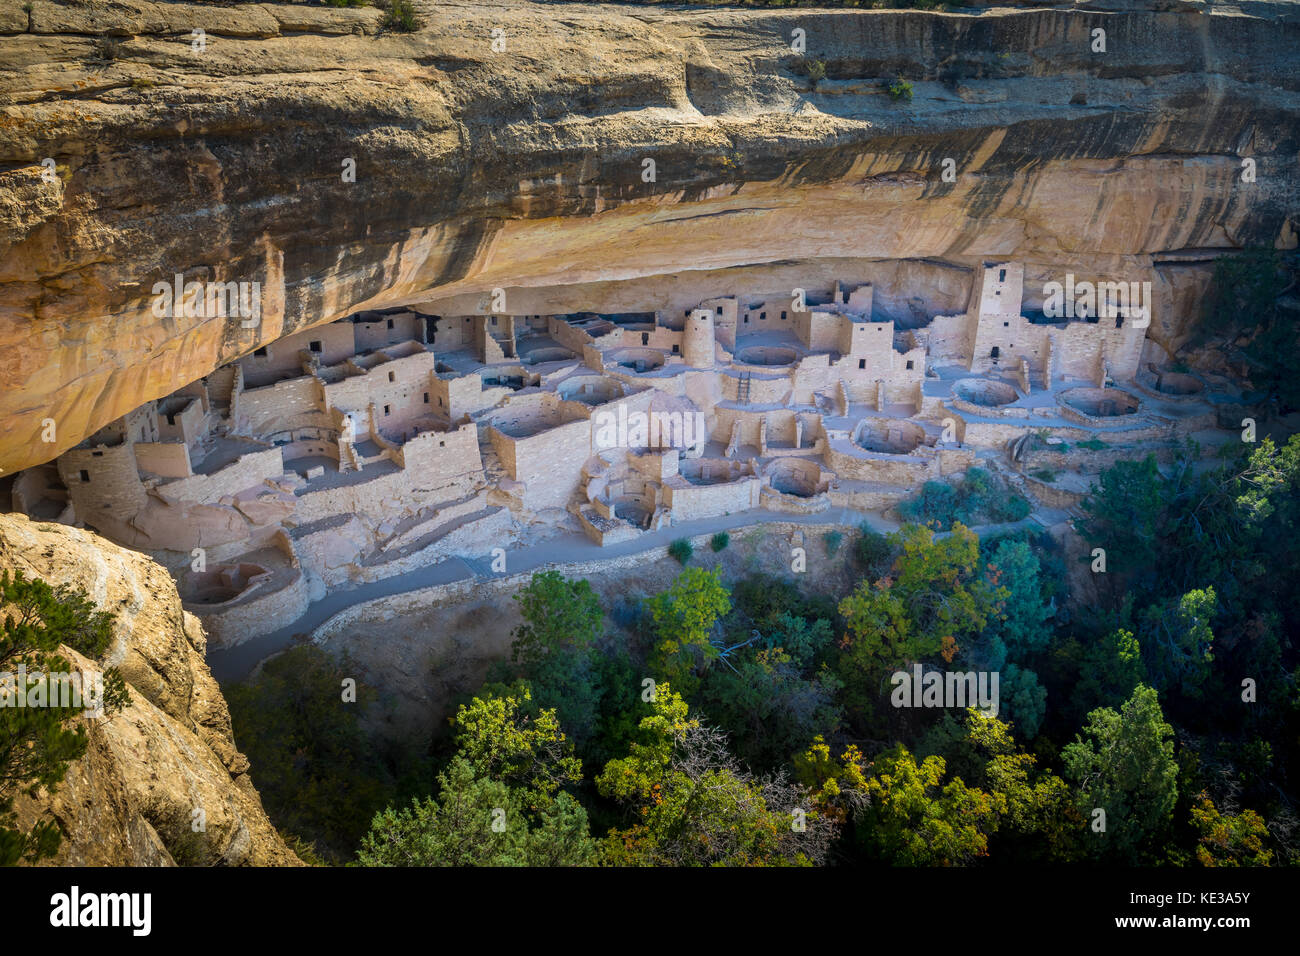 Mesa Verde National Park is a National Park and World Heritage Site located in Montezuma County, Colorado. - Stock Image